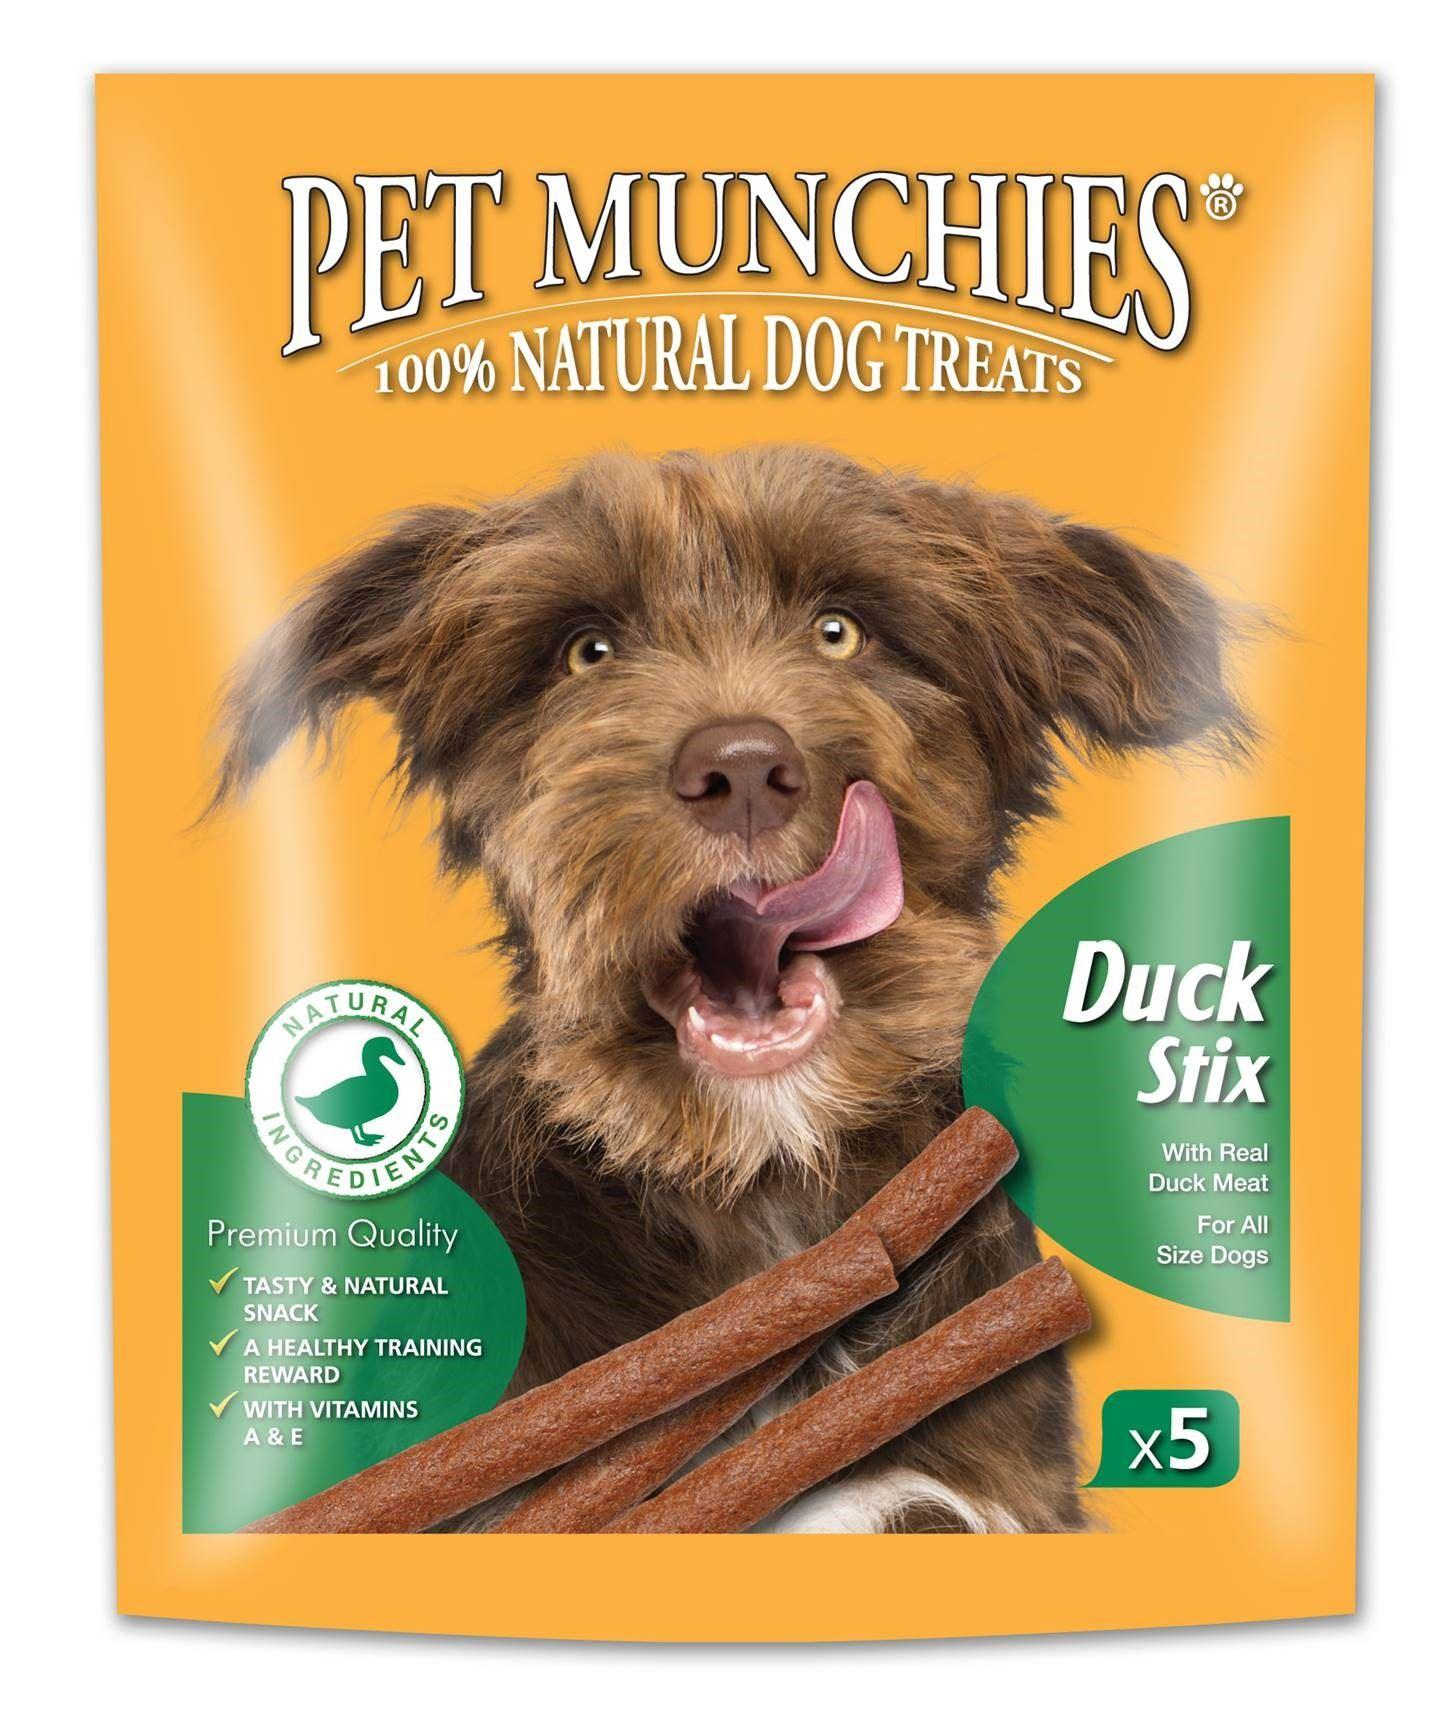 Pet Munchie Duck Stix